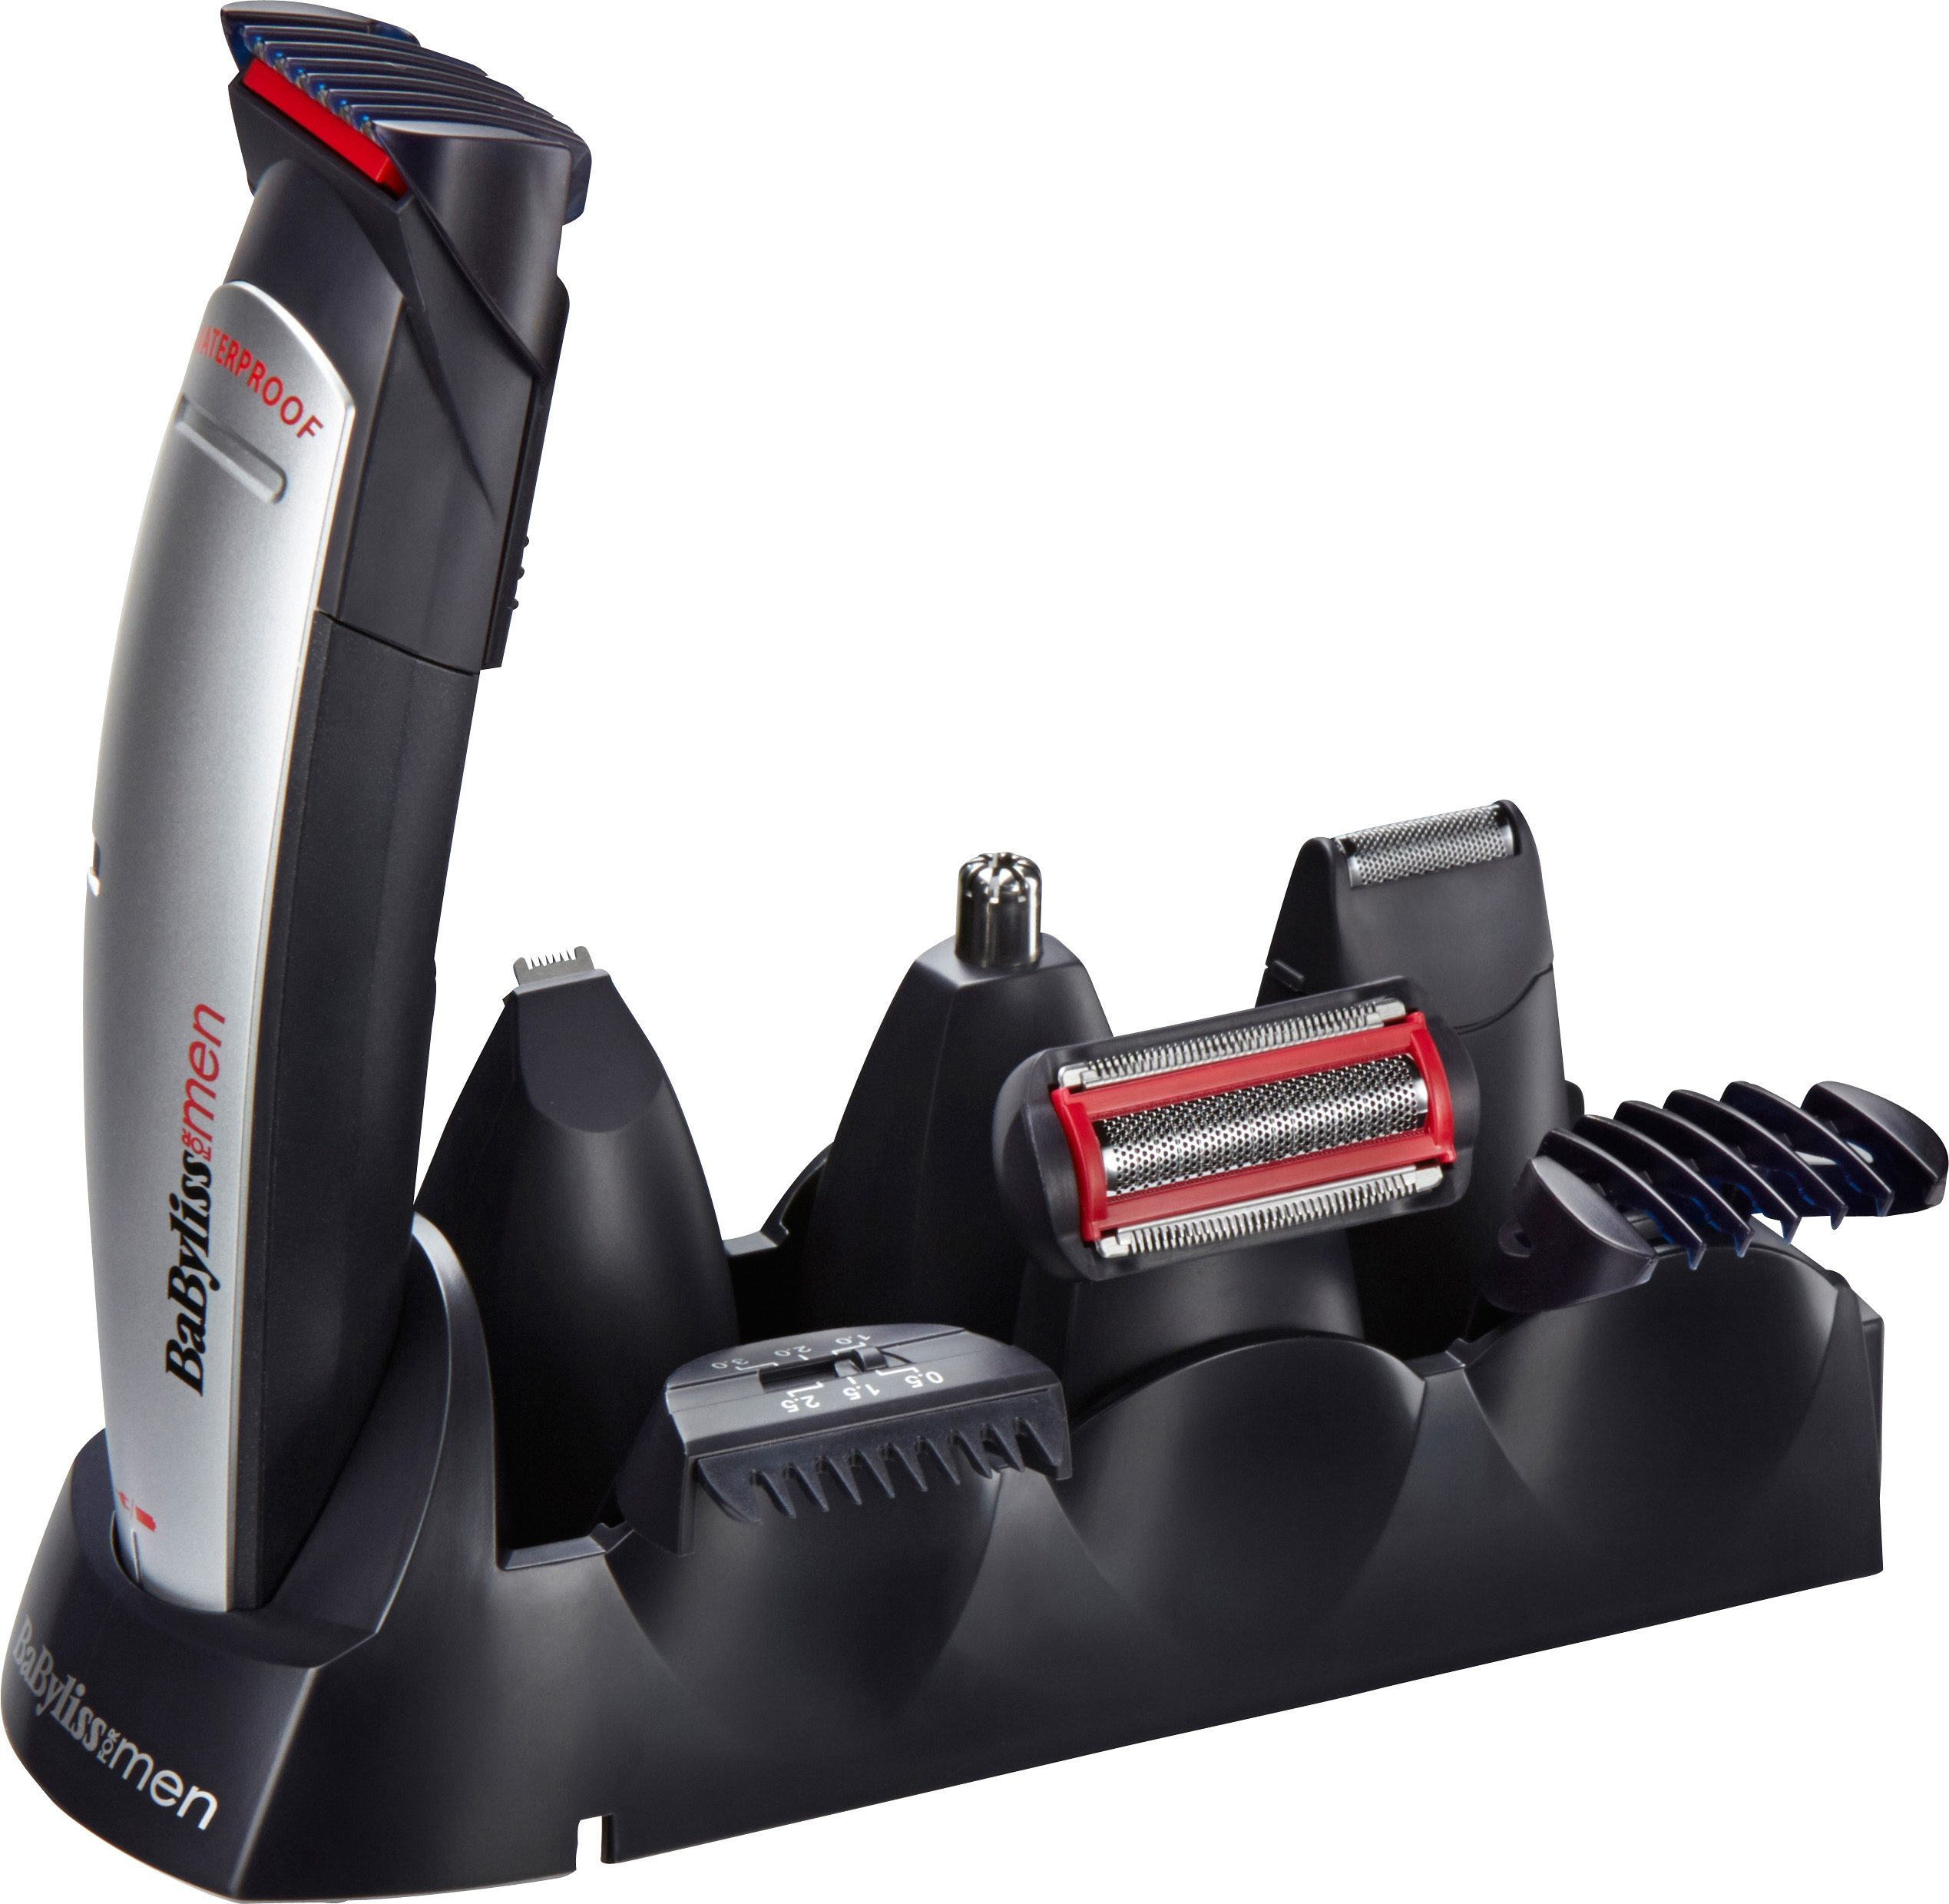 BaByliss, Multifunktionstrimmer, E837E, 10 in 1